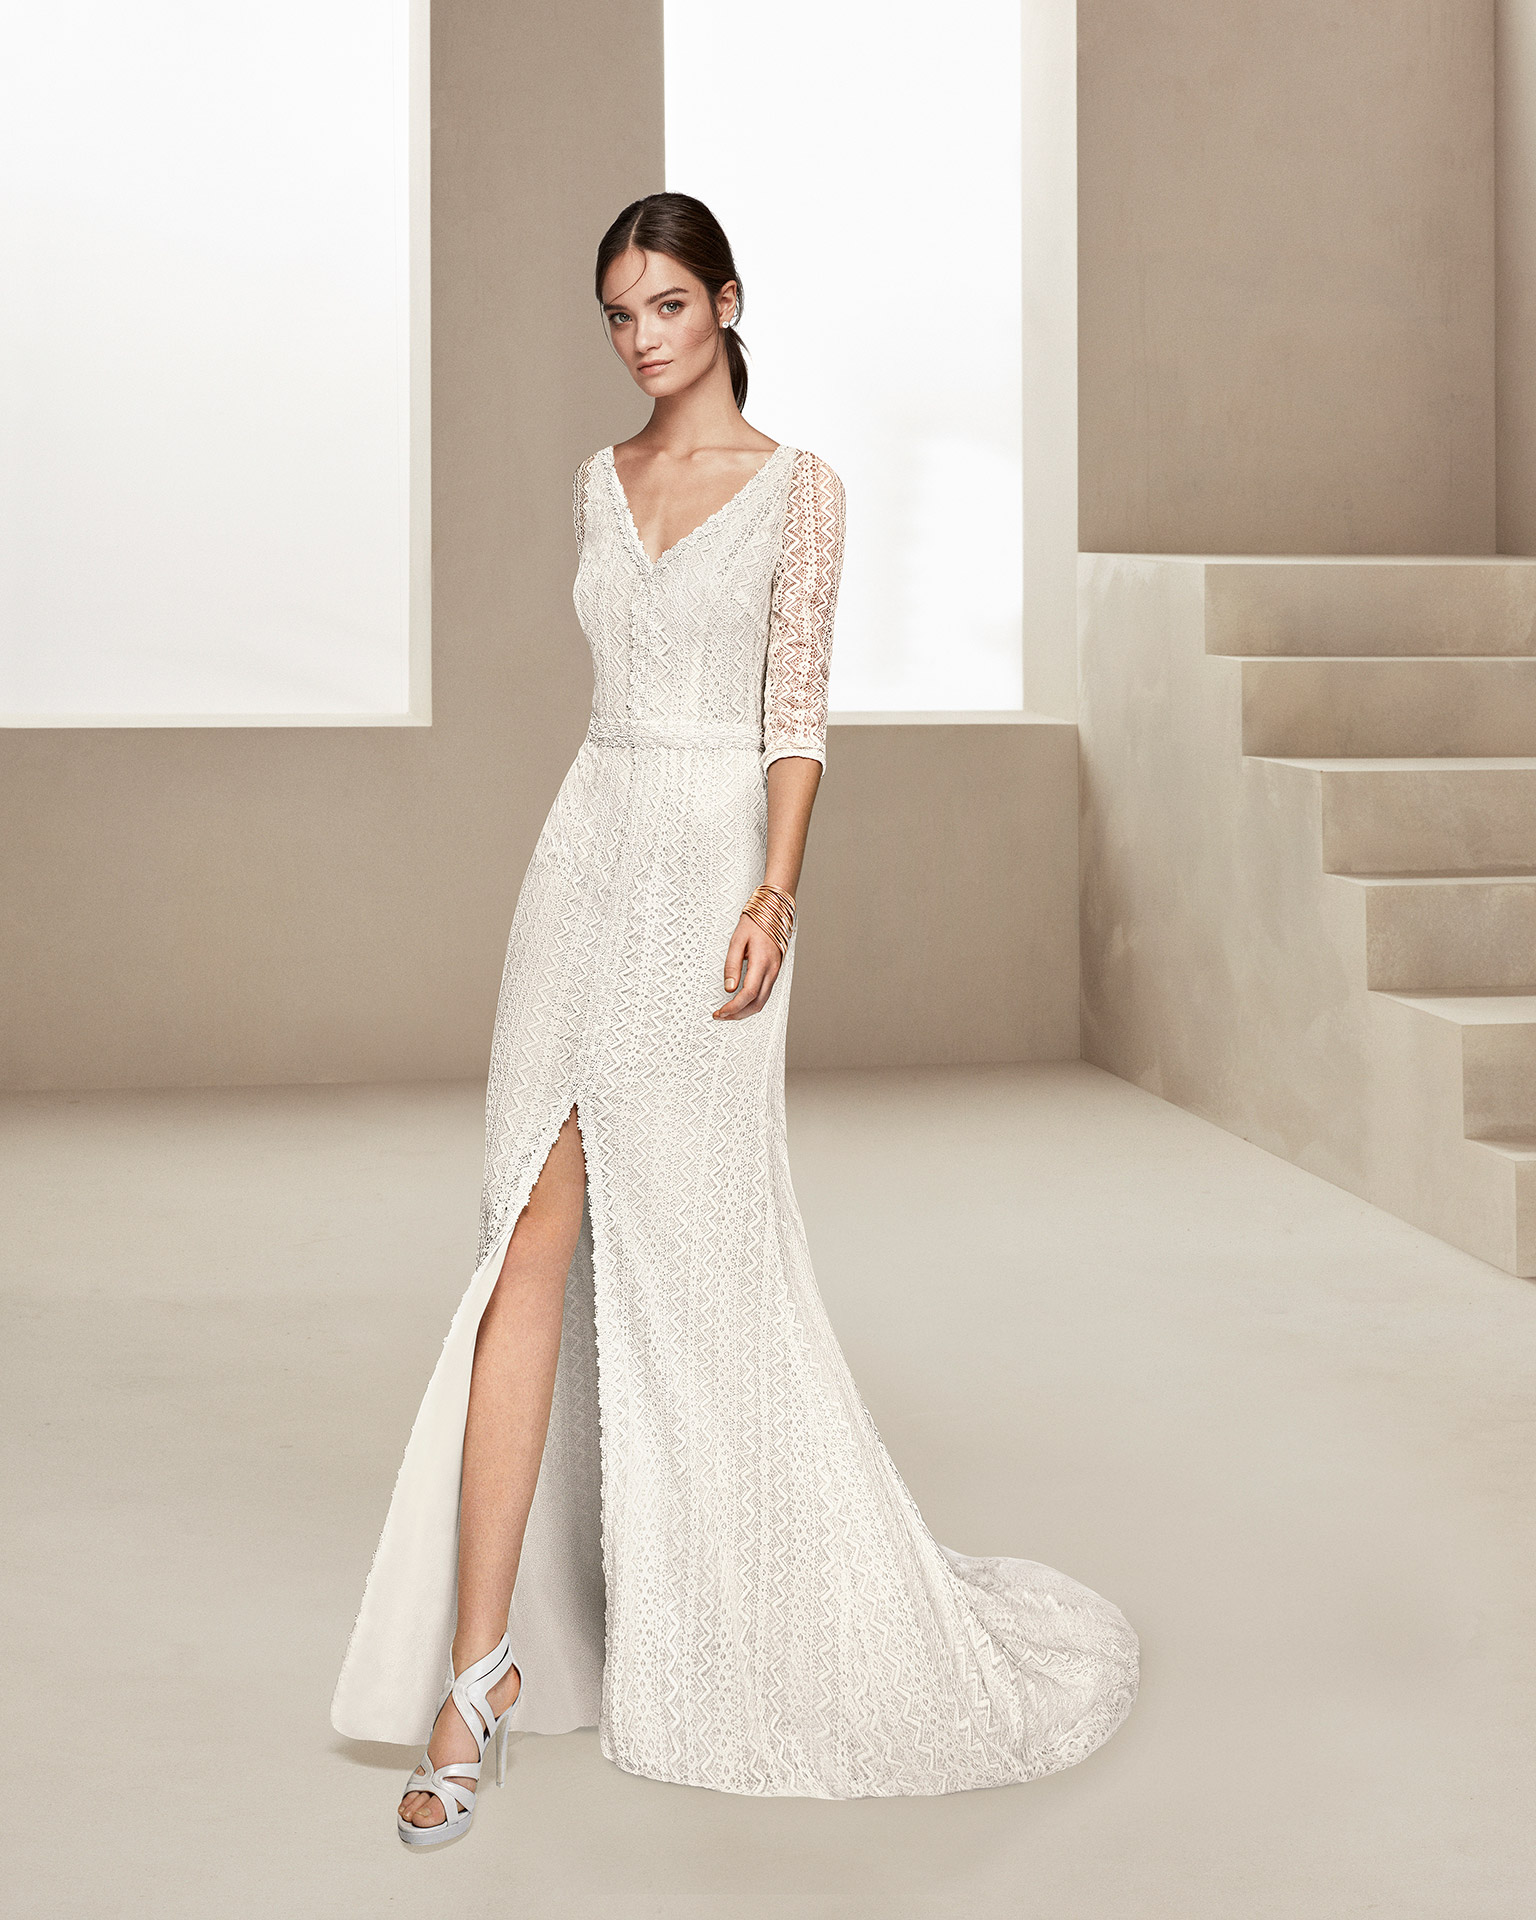 Boho-style beaded lace wedding dress with three-quarter sleeves and front opening. 2020 ALMANOVIA Collection.